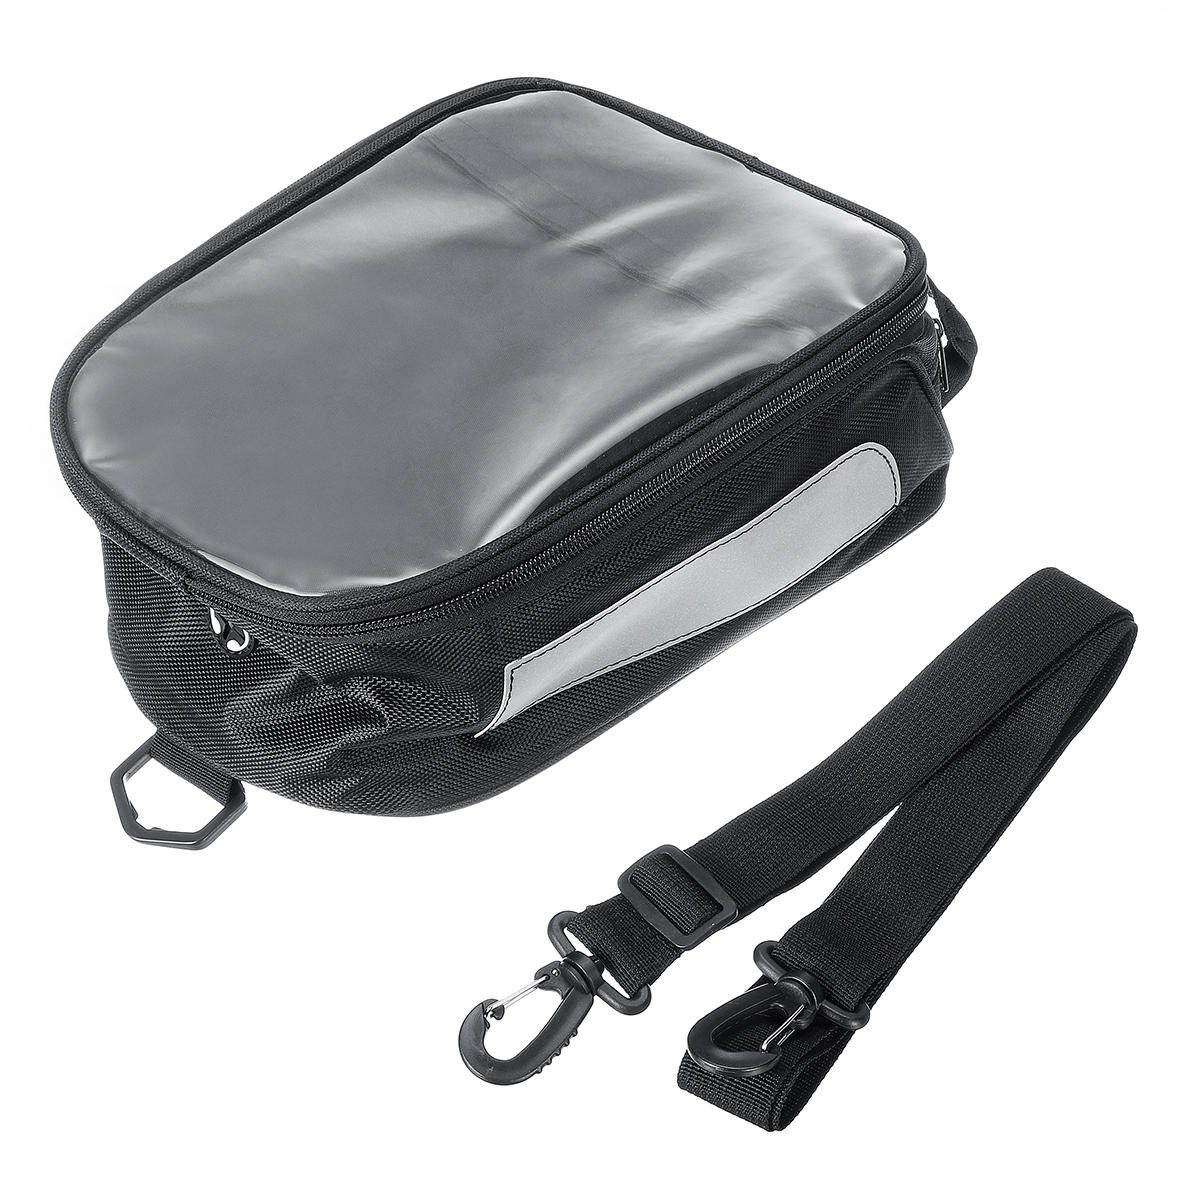 Motorcycle Tank Bag Oil Fuel Magnetic Phone Pouch Waterproof For Honda Yamaha BMW Harley